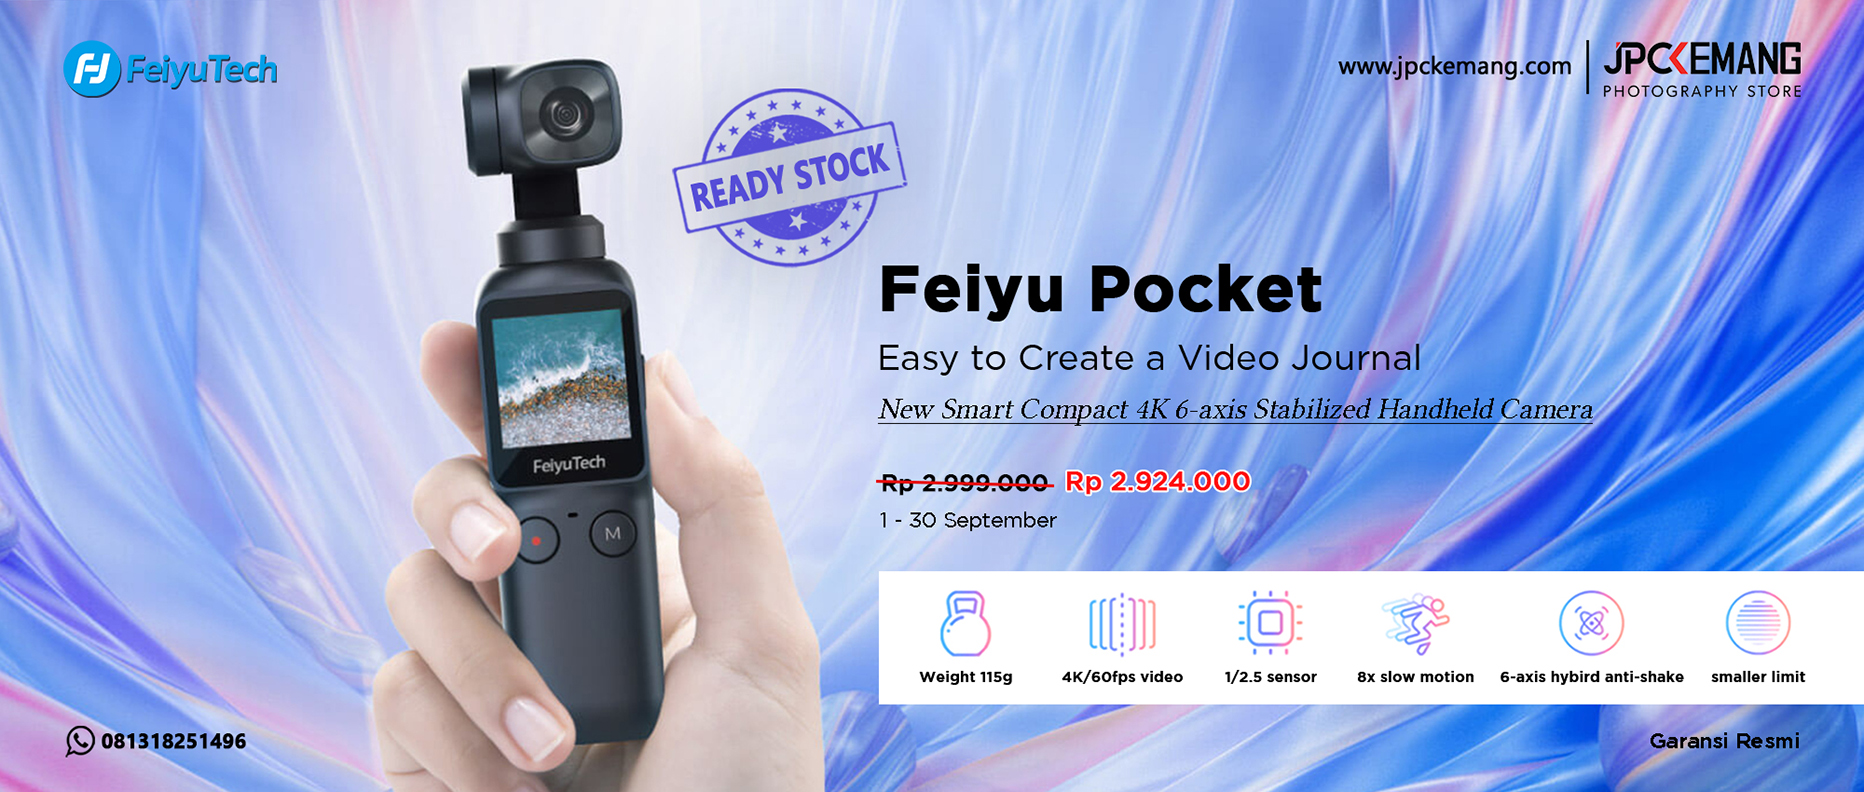 Feiyu Pocket New Smart Compact 4K Stabilized Handheld Camera